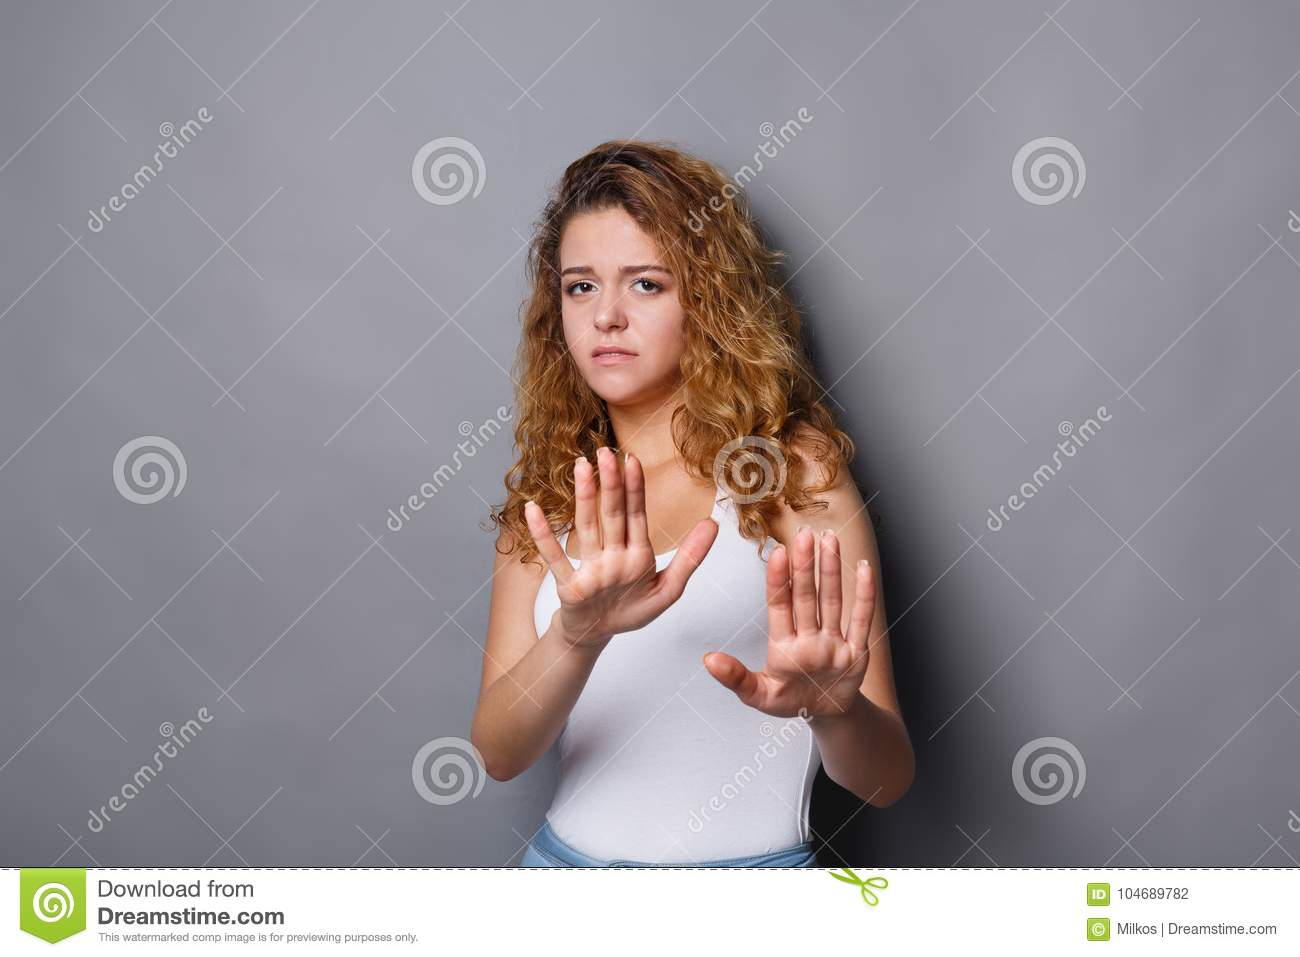 Young woman showing rejection sign